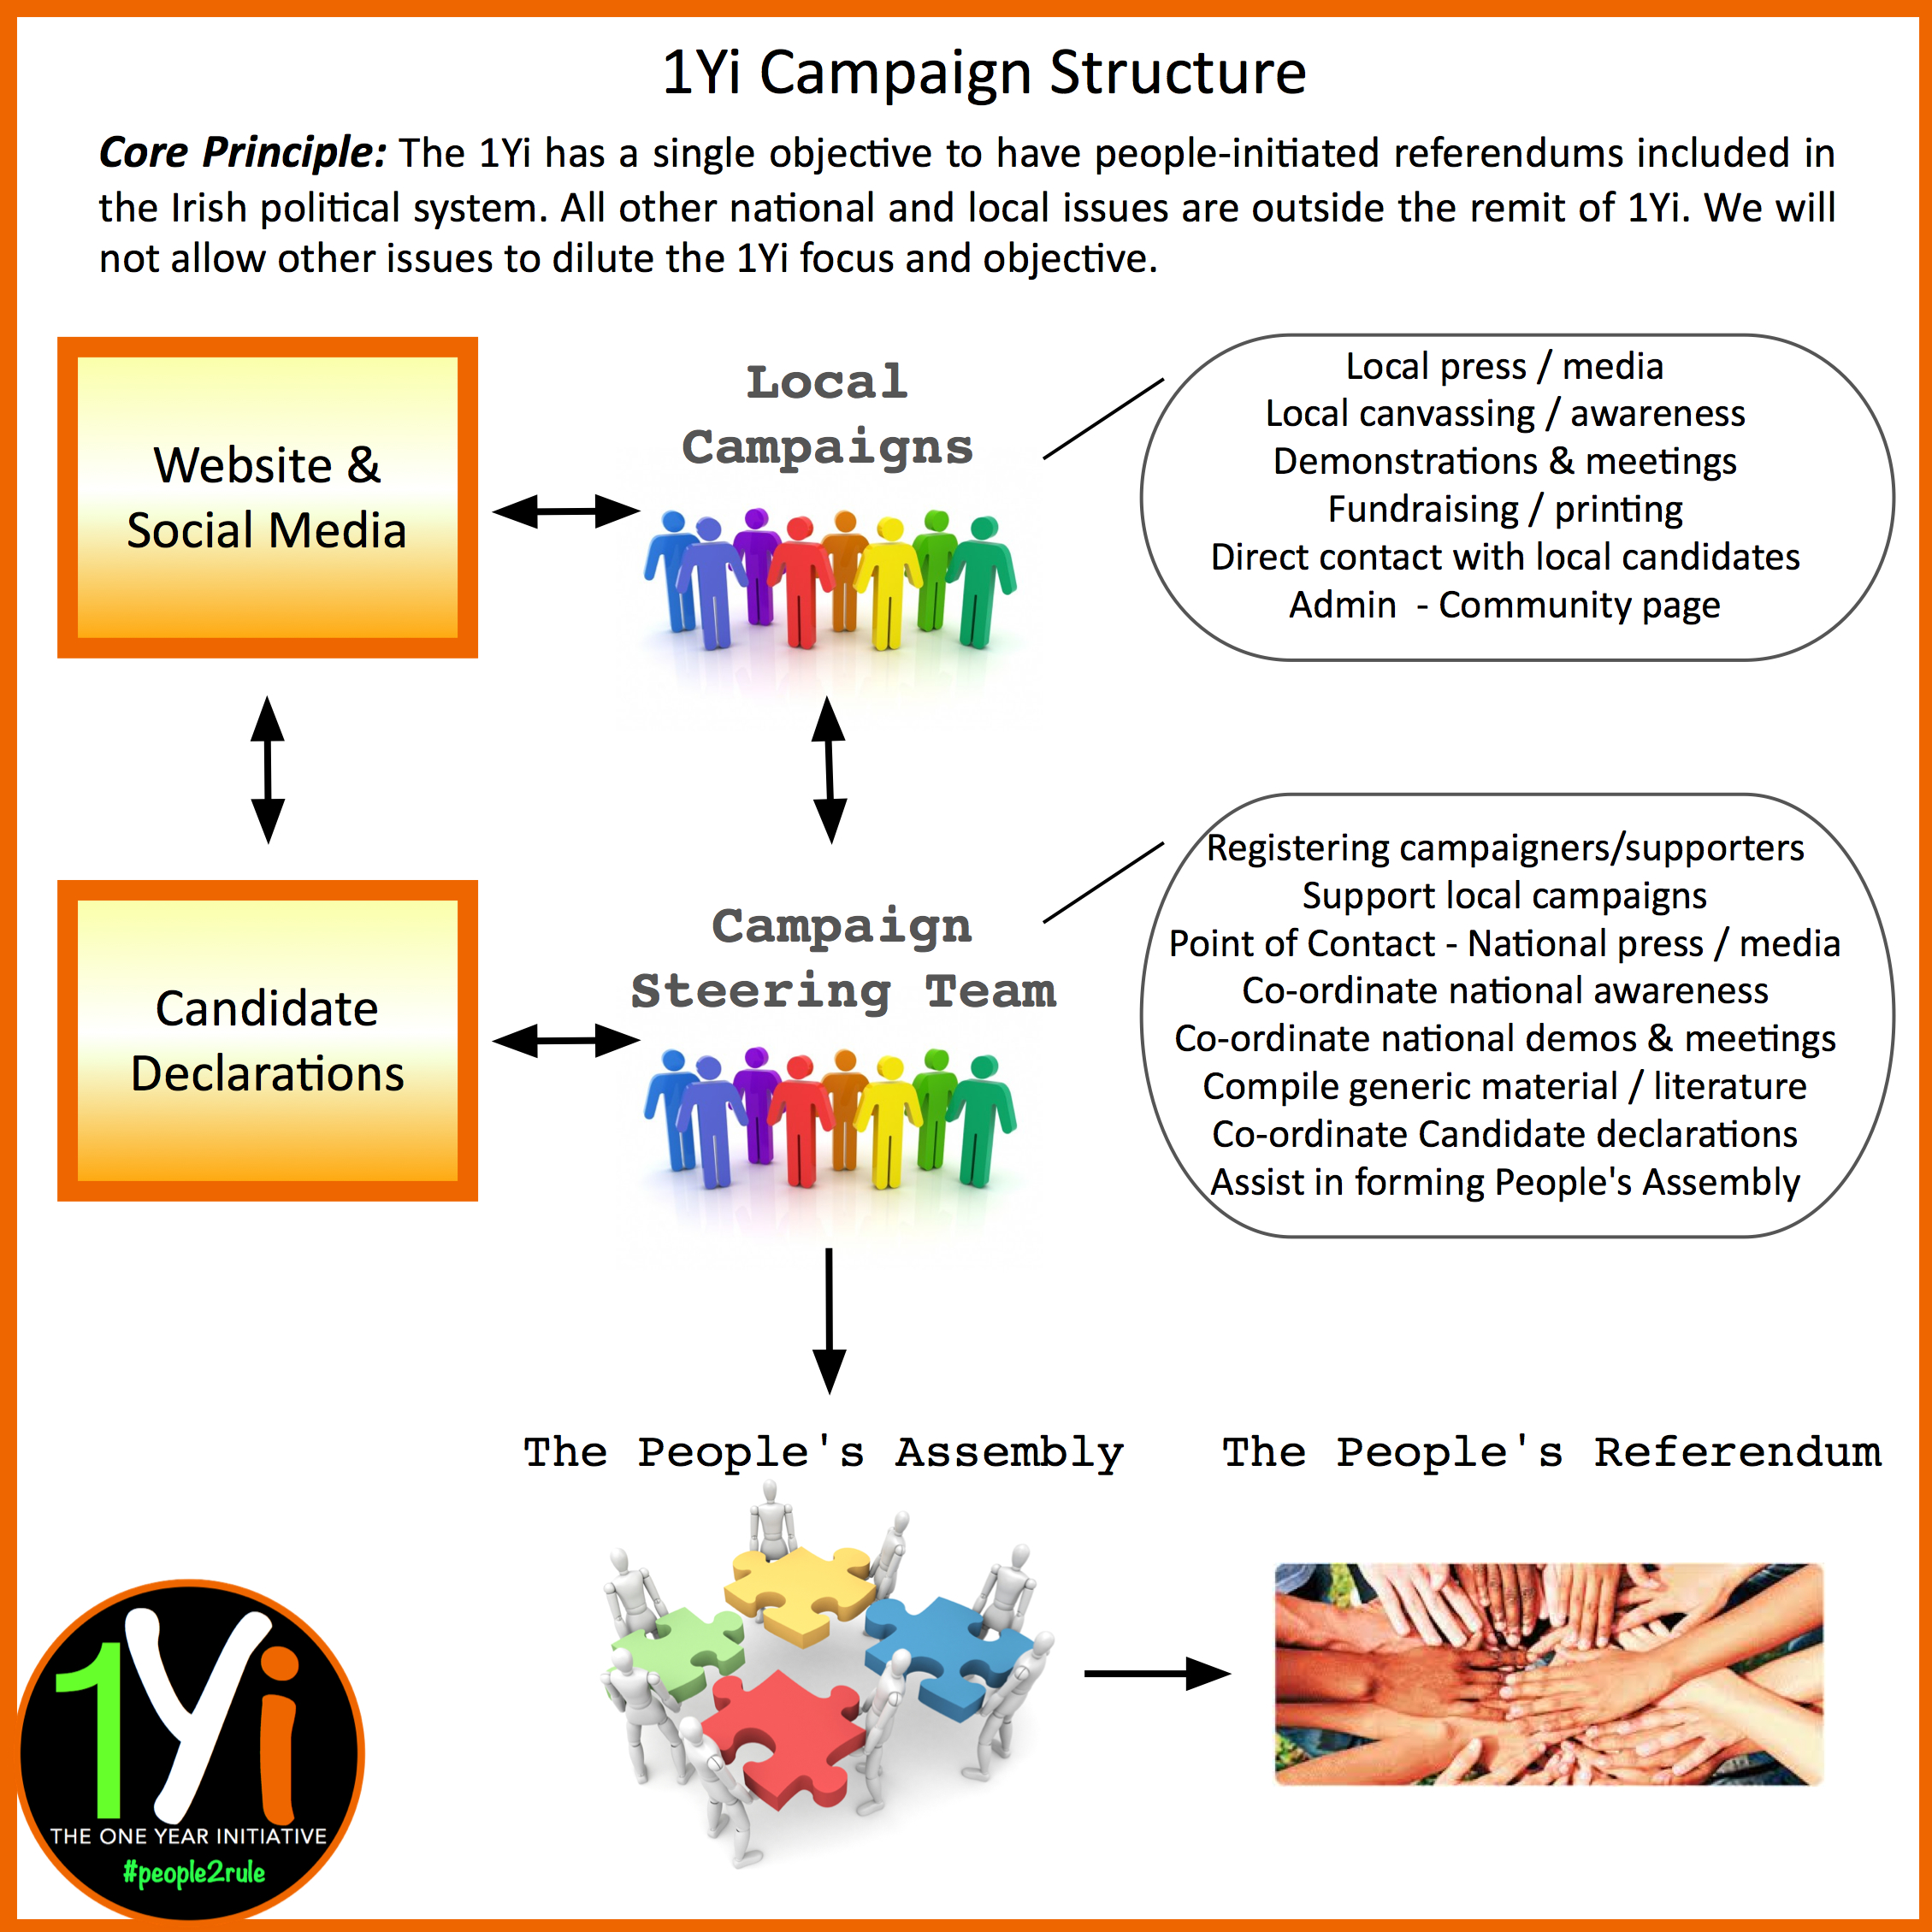 This campaign is completely voluntary. All persons who wish to play an active role in the campaign automatically become part of the steering team